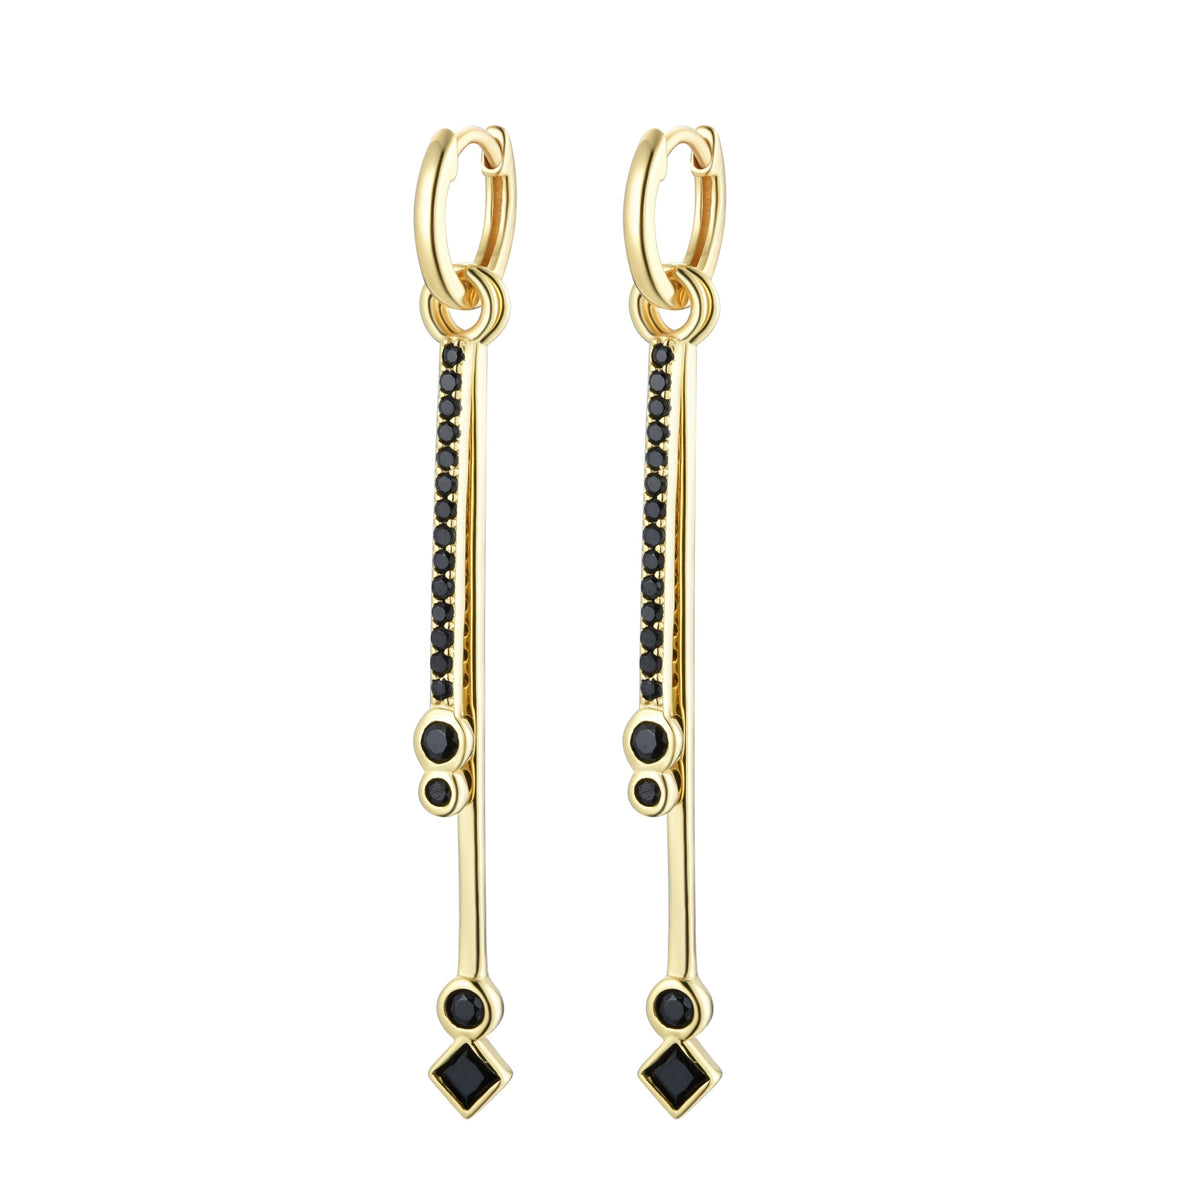 Ferentina | Blondie Earrings | 925 Silver | Black CZ | 18K Gold Plated